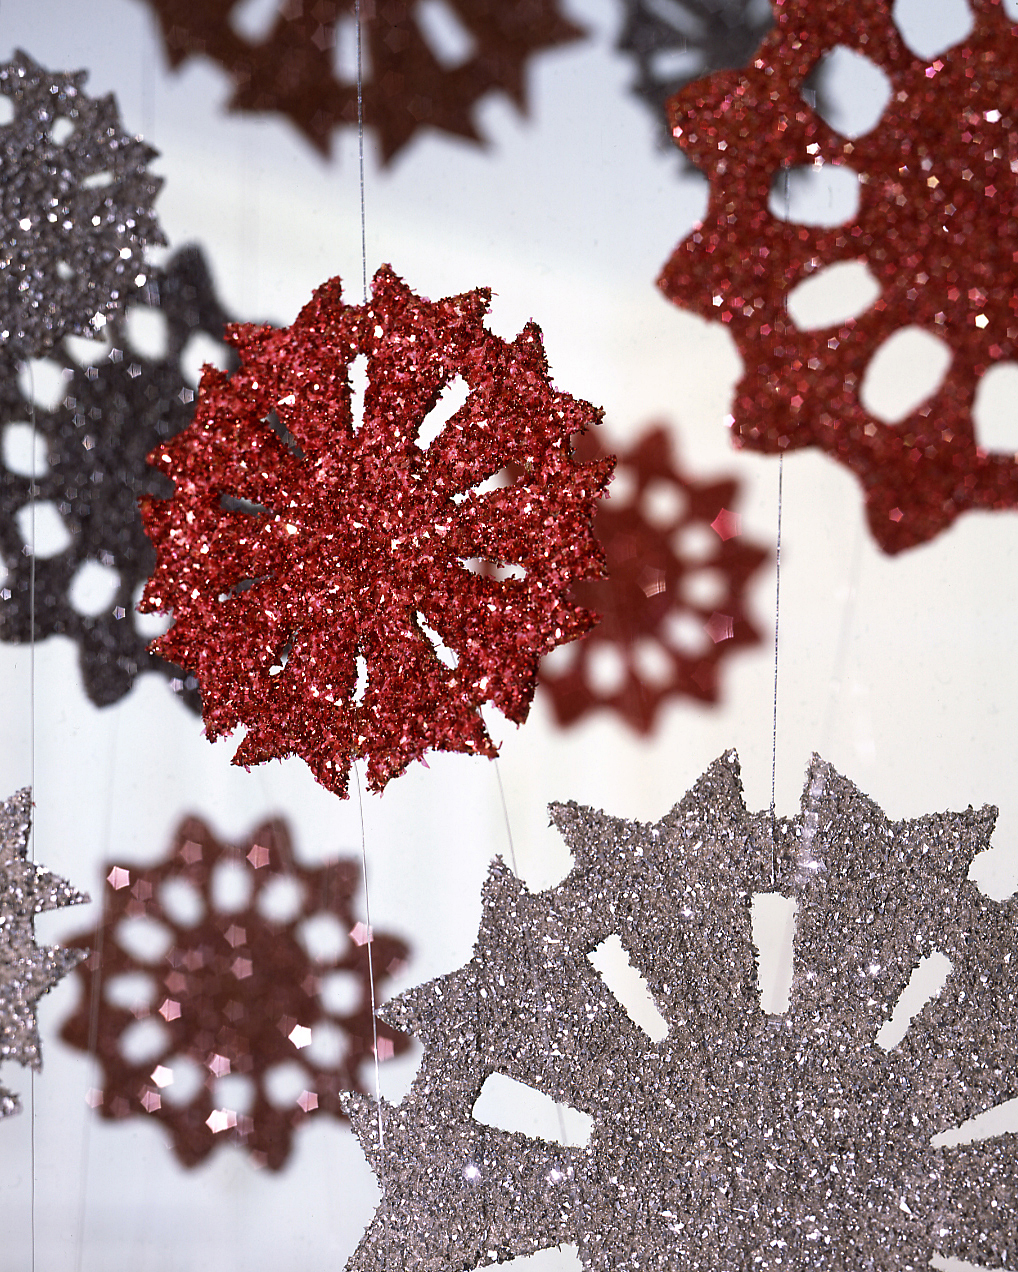 Tinsel isn't just for sprinkling on an evergreen tree. Try creating our sparkling ornaments to brighten any room. Begin by enlarging templates as desired with a copier—then tape these to a piece of heavy mat board or smooth cardboard, and place over a protective surface, like a self-healing mat. With a utility knife, cut through the layers to create your snowflake shape. Remove the template, and using a medium paintbrush, coat one side of the shape with craft glue. Sprinkle with fine glitter; let the glue dry, and shake off excess glitter. Repeat, using glass-shard glitter on both sides. Finally, attach silver thread and hang the snowflakes on your tree with removable adhesive hooks.Shop Now: Martha Stewart Collection Jewel Glitter Set, $14, michaels.com. Creatology Crystal Clear Glitter, $7 for 12 ounces, michaels.com. Martha Stewart Collection Swivel Cutting Knife, $13, michaels.com. Creatology Brown Corrugated Paper Board, $4.49, michaels.com.